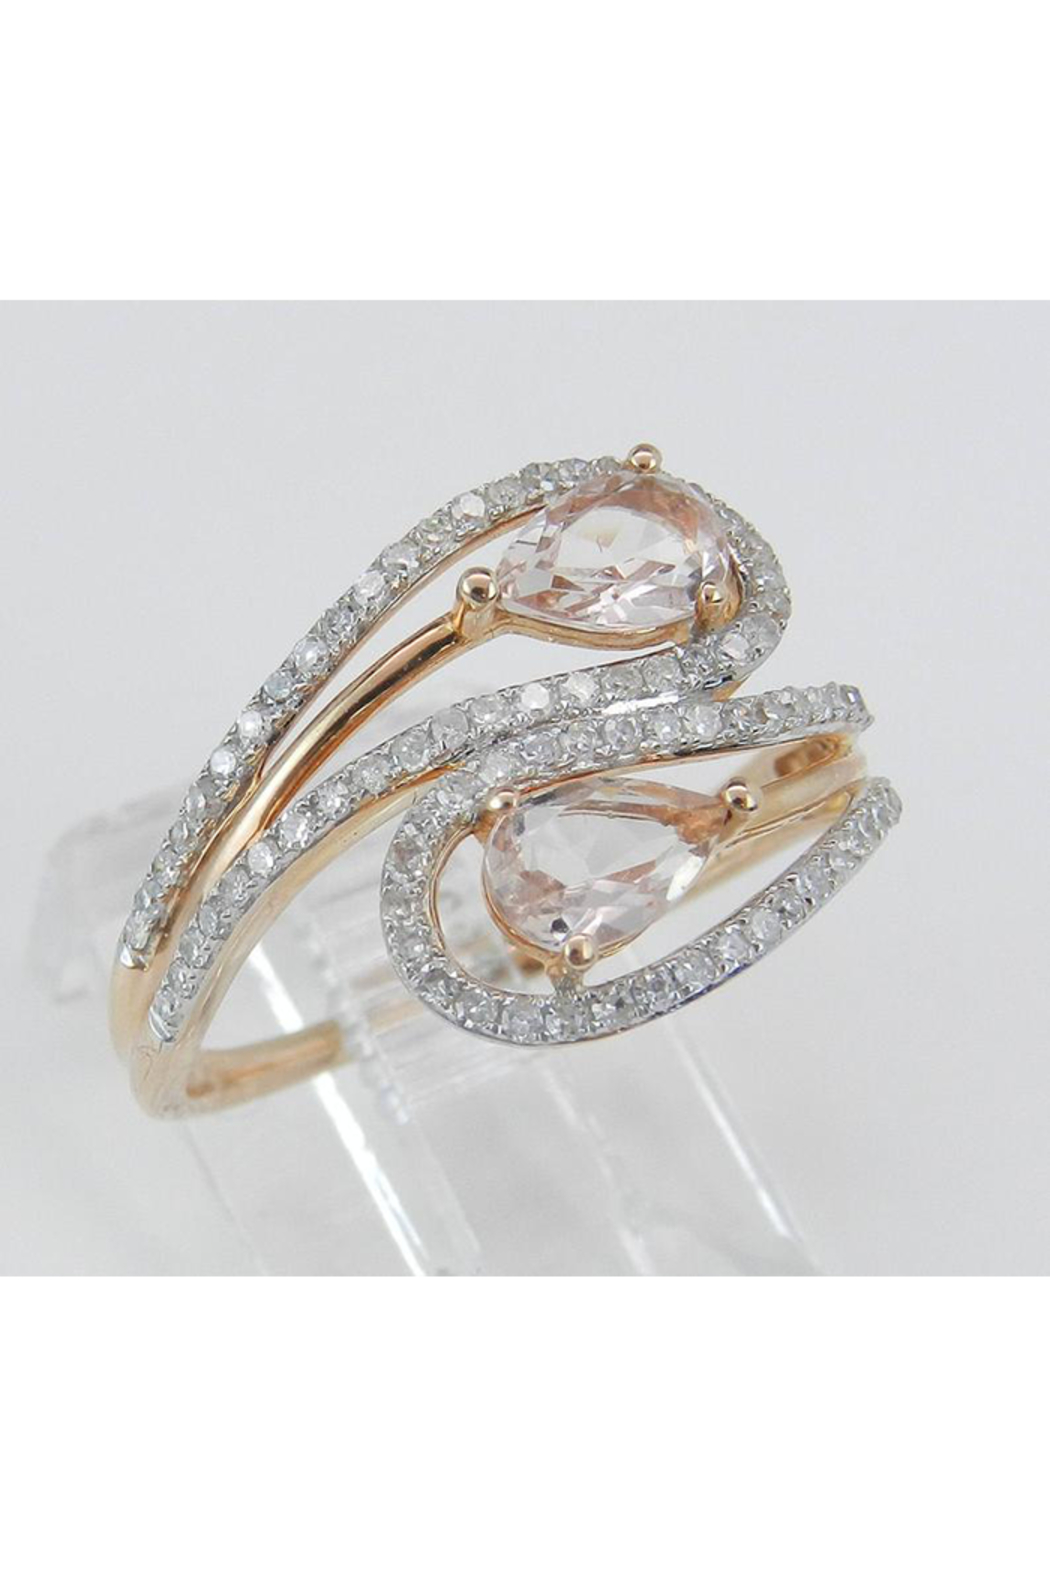 Margolin & Co 14K Rose Gold Diamond and Morganite Cocktail Bypass Ring Size 7.25 Beryl Gem FREE Sizing - Side Cropped Image